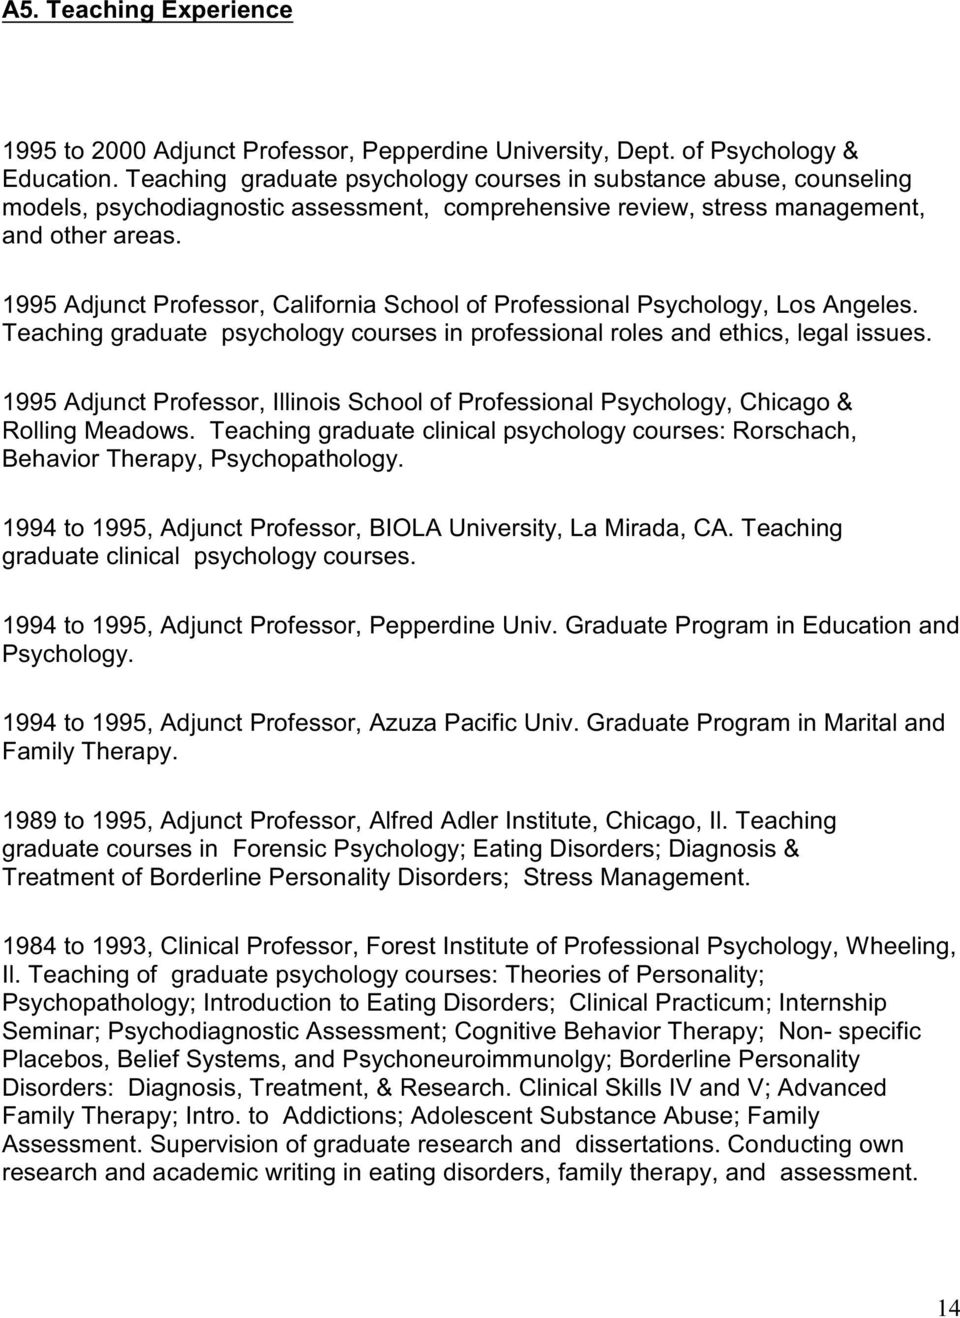 1995 Adjunct Professor, California School of Professional Psychology, Los Angeles. Teaching graduate psychology courses in professional roles and ethics, legal issues.